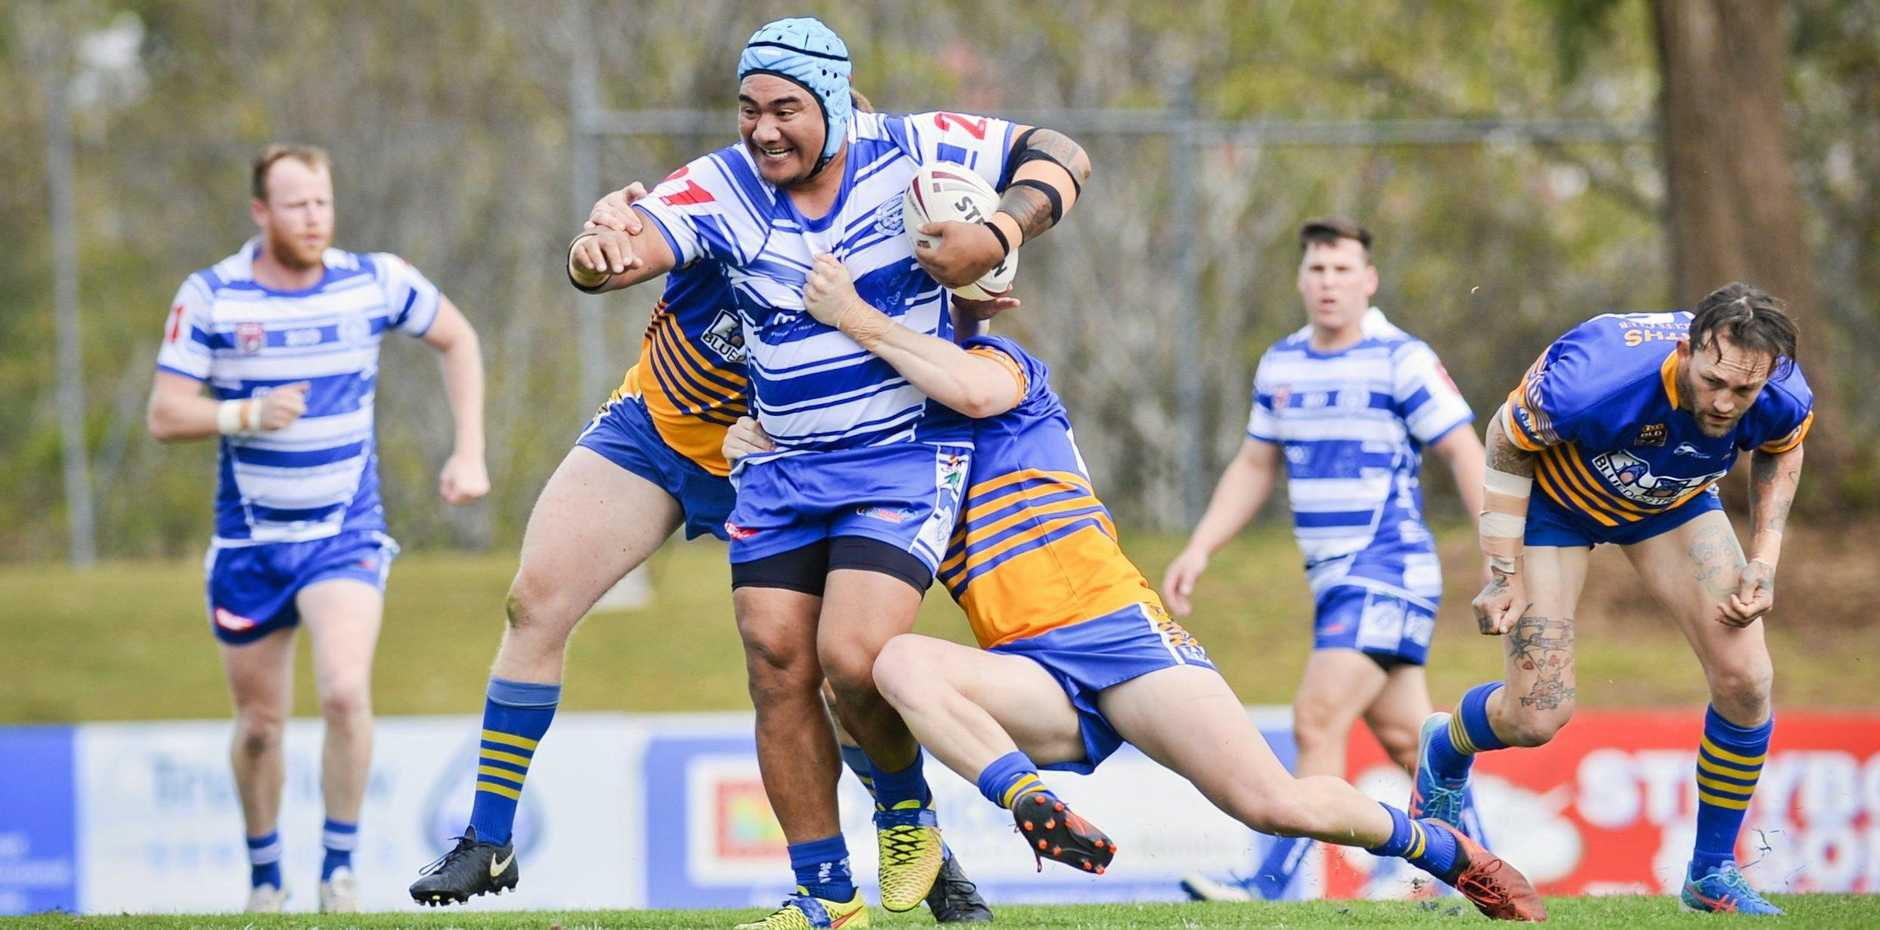 TRUE GRIT: Brothers' Graham Sepulona surges through a tackle during the Reserve Grade major semi-final at North Ipswich Reserve on Saturday.